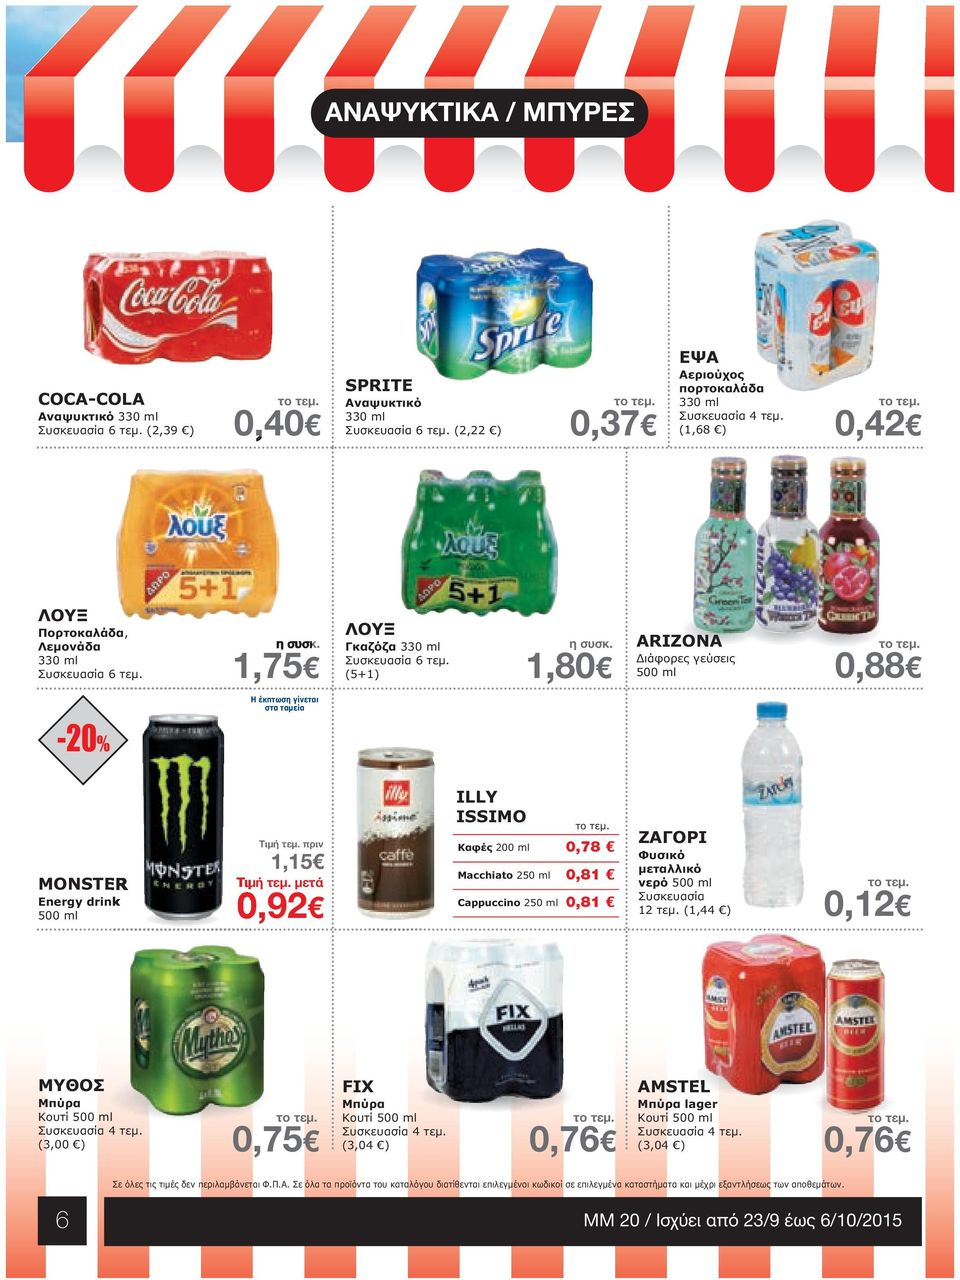 (5+1) 1,80 ARIZONA 500 ml 0,88 MONSTER Energy drink 500 ml 1,15 0,92 ILLY ISSIMO το τεµ.